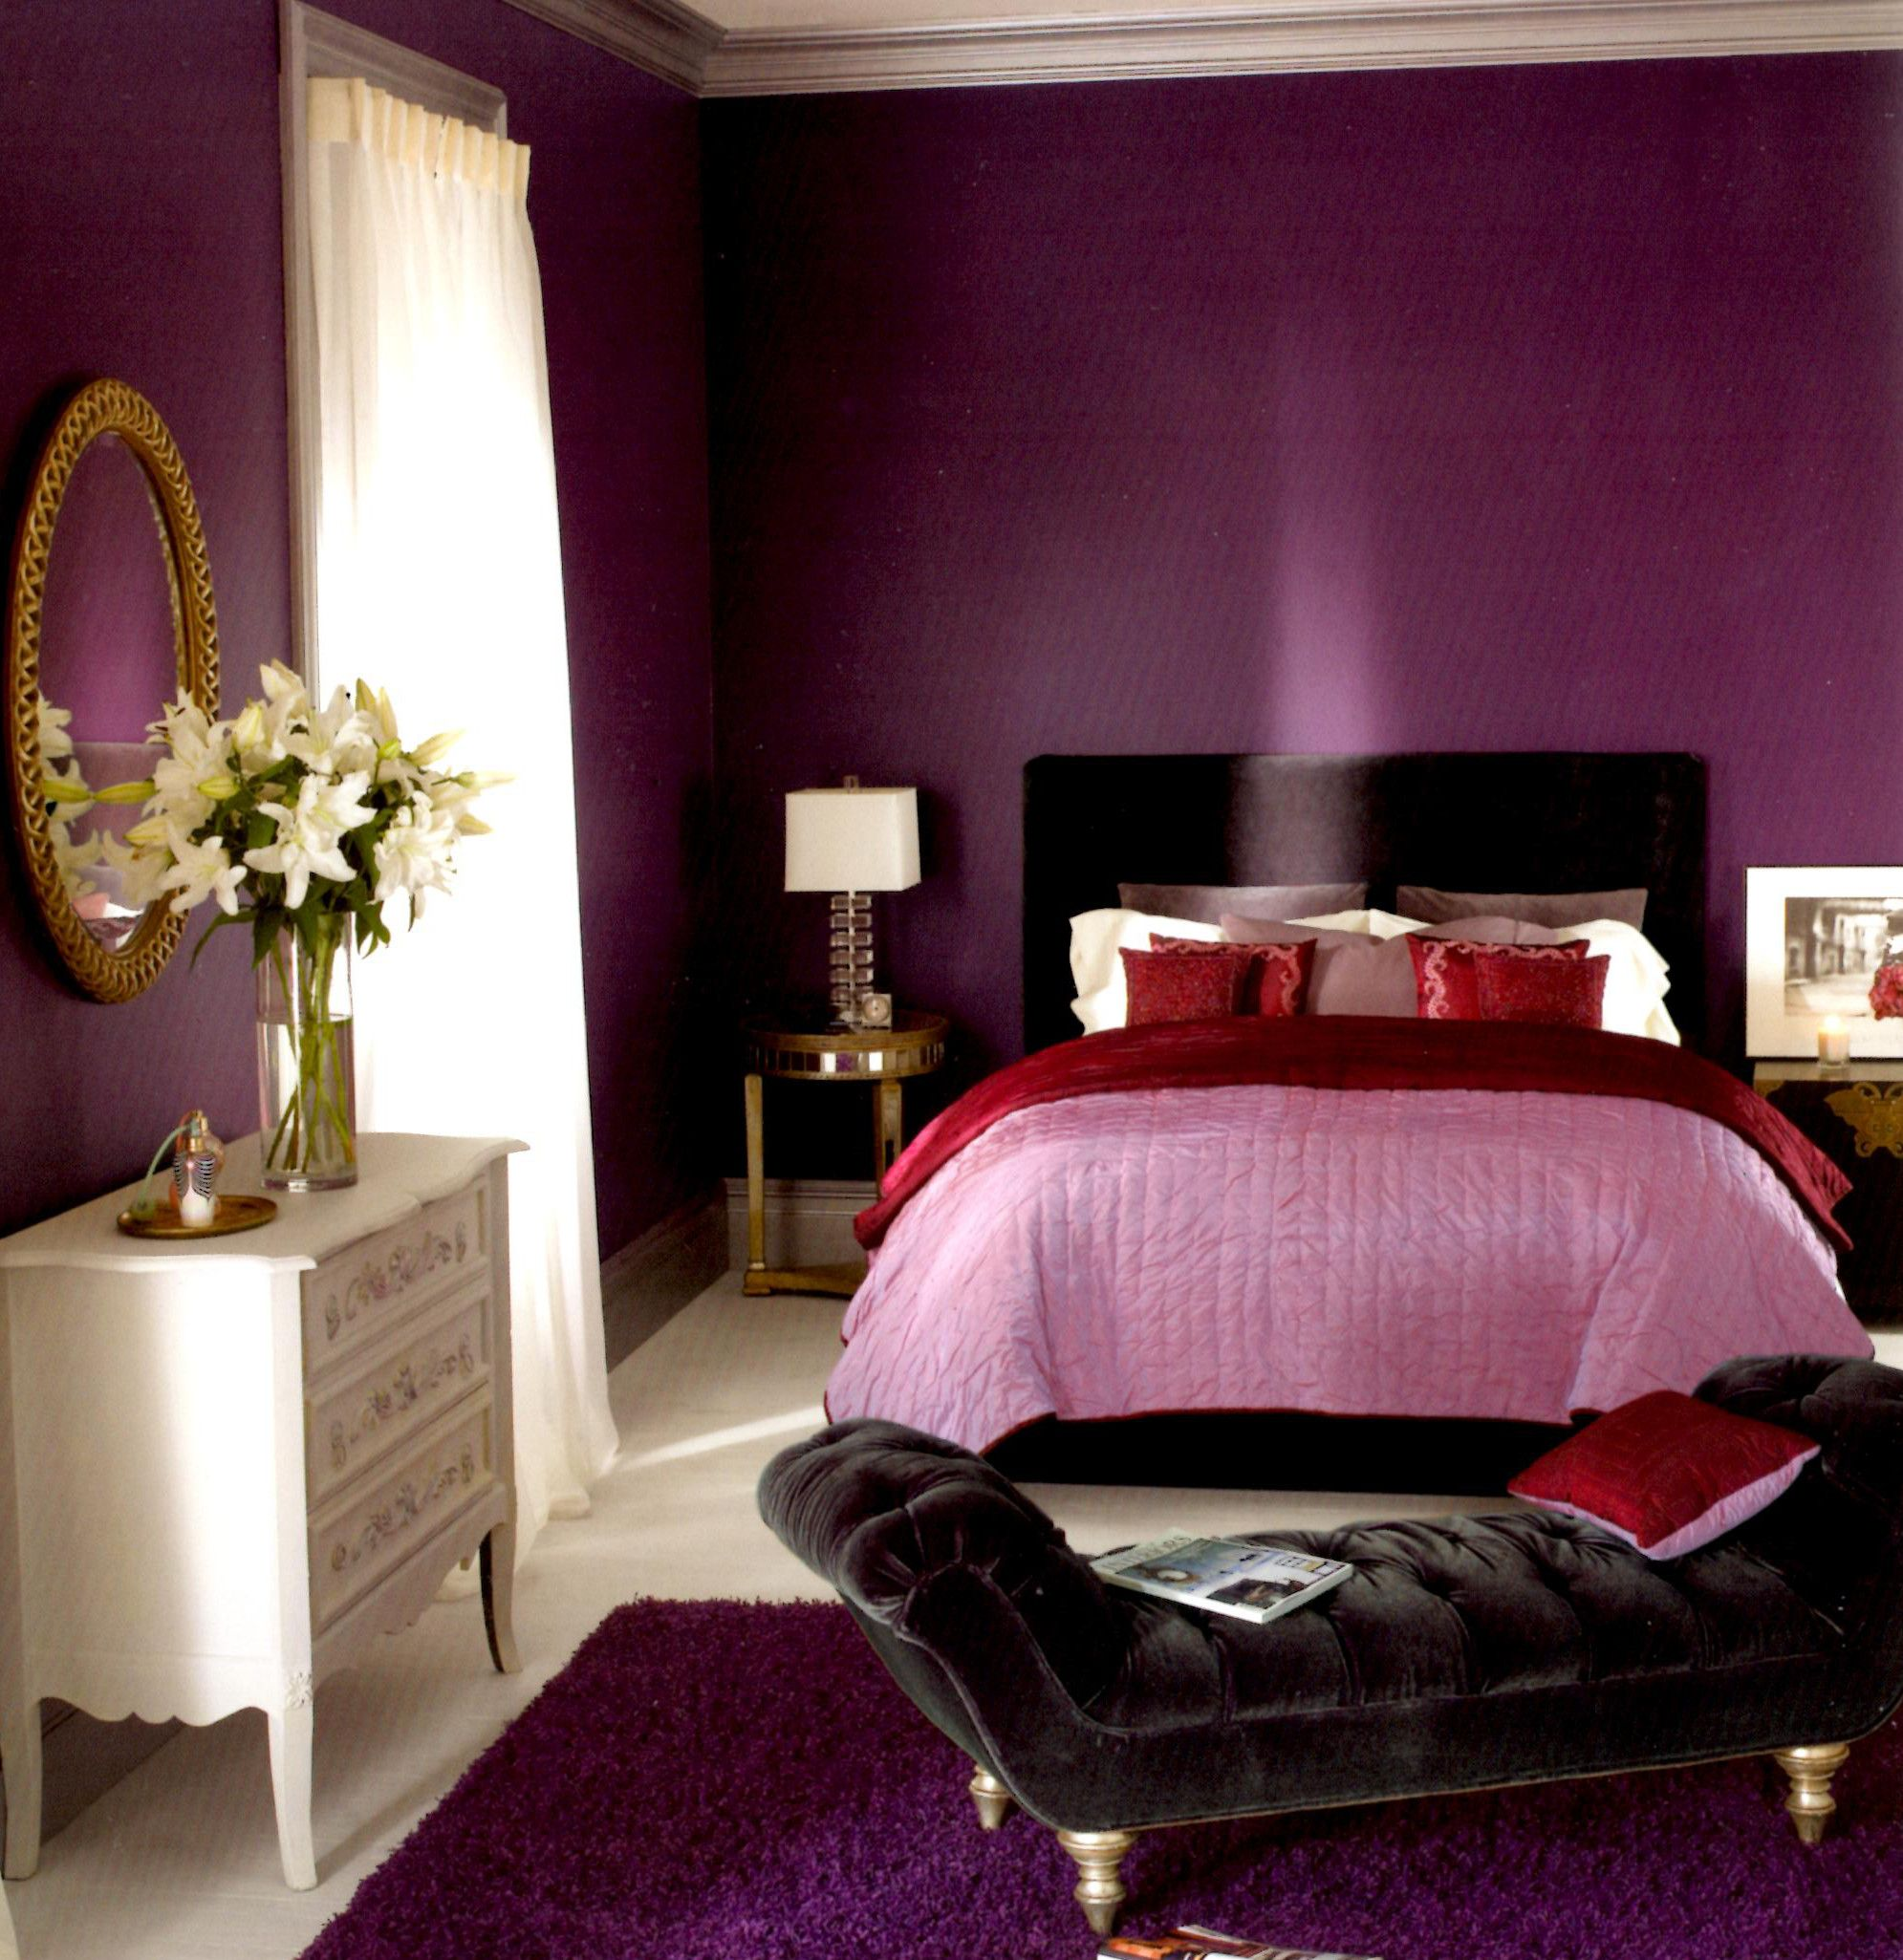 Dark purple bedroom colors - Remarkable Purple Wall Paneling Colors As Smart Bedroom Paint Ideas In Teenage Bedroom Decor Also White